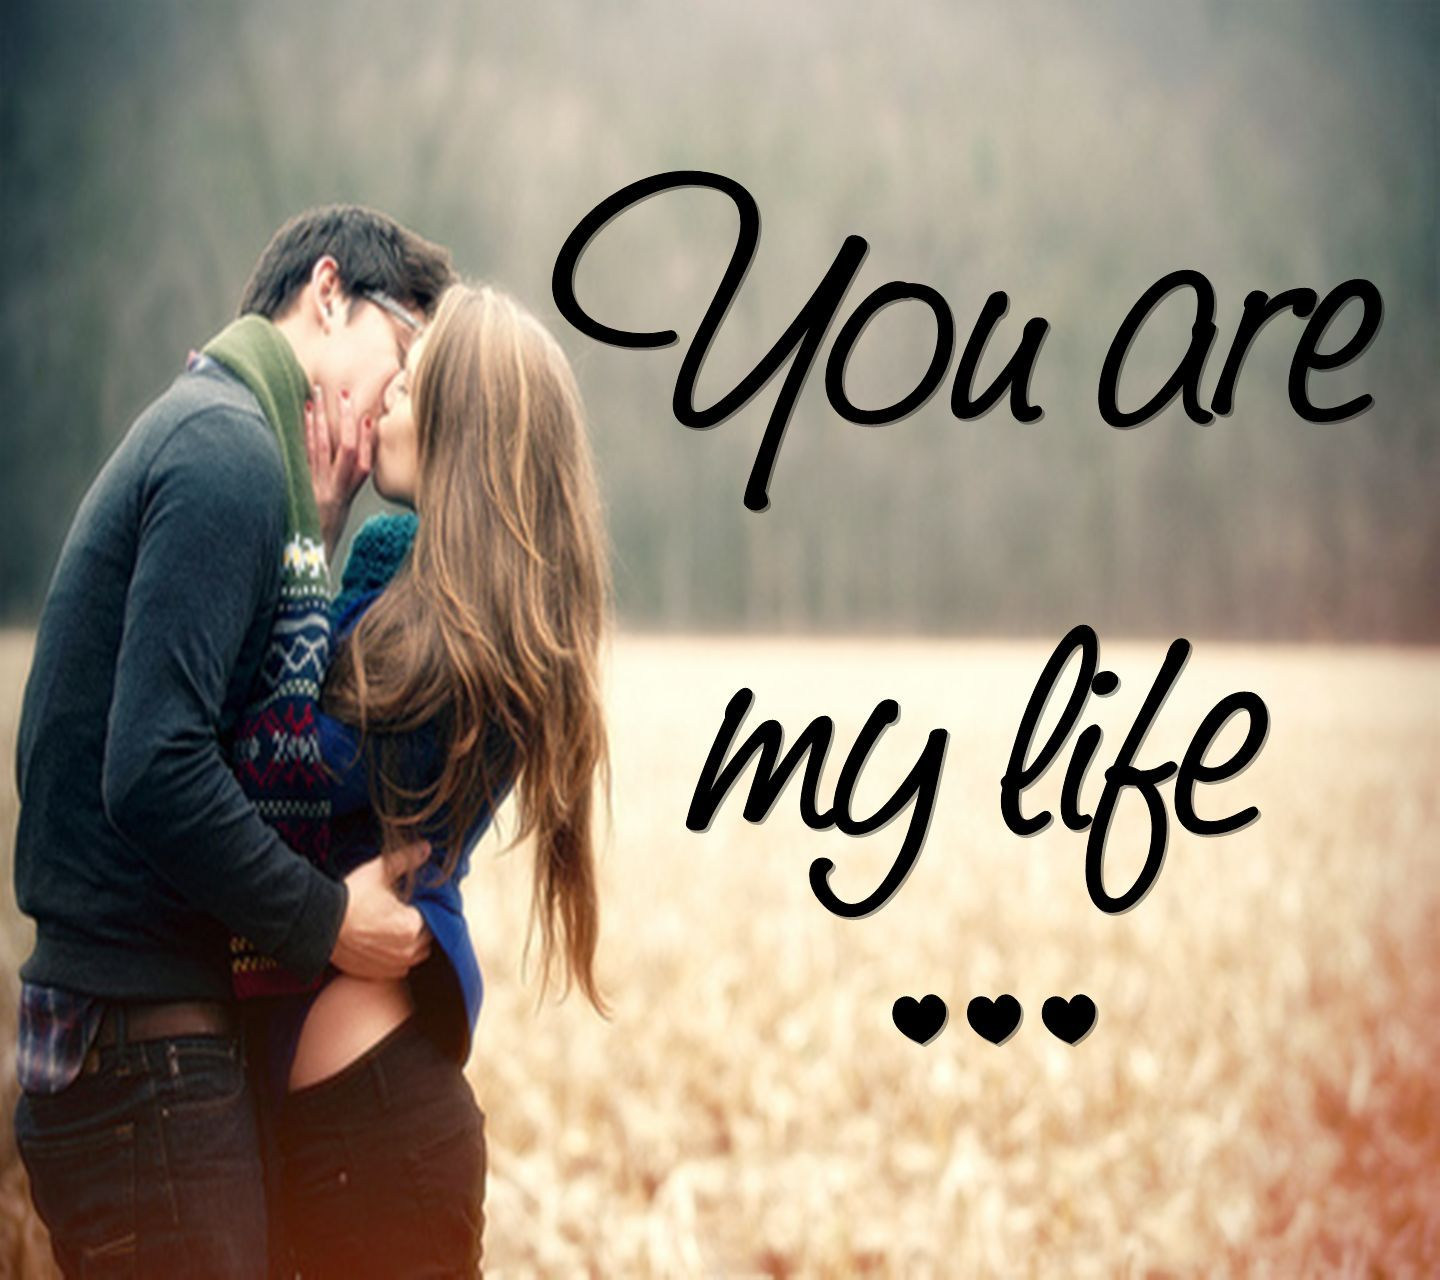 Love images couple with quotes kiss